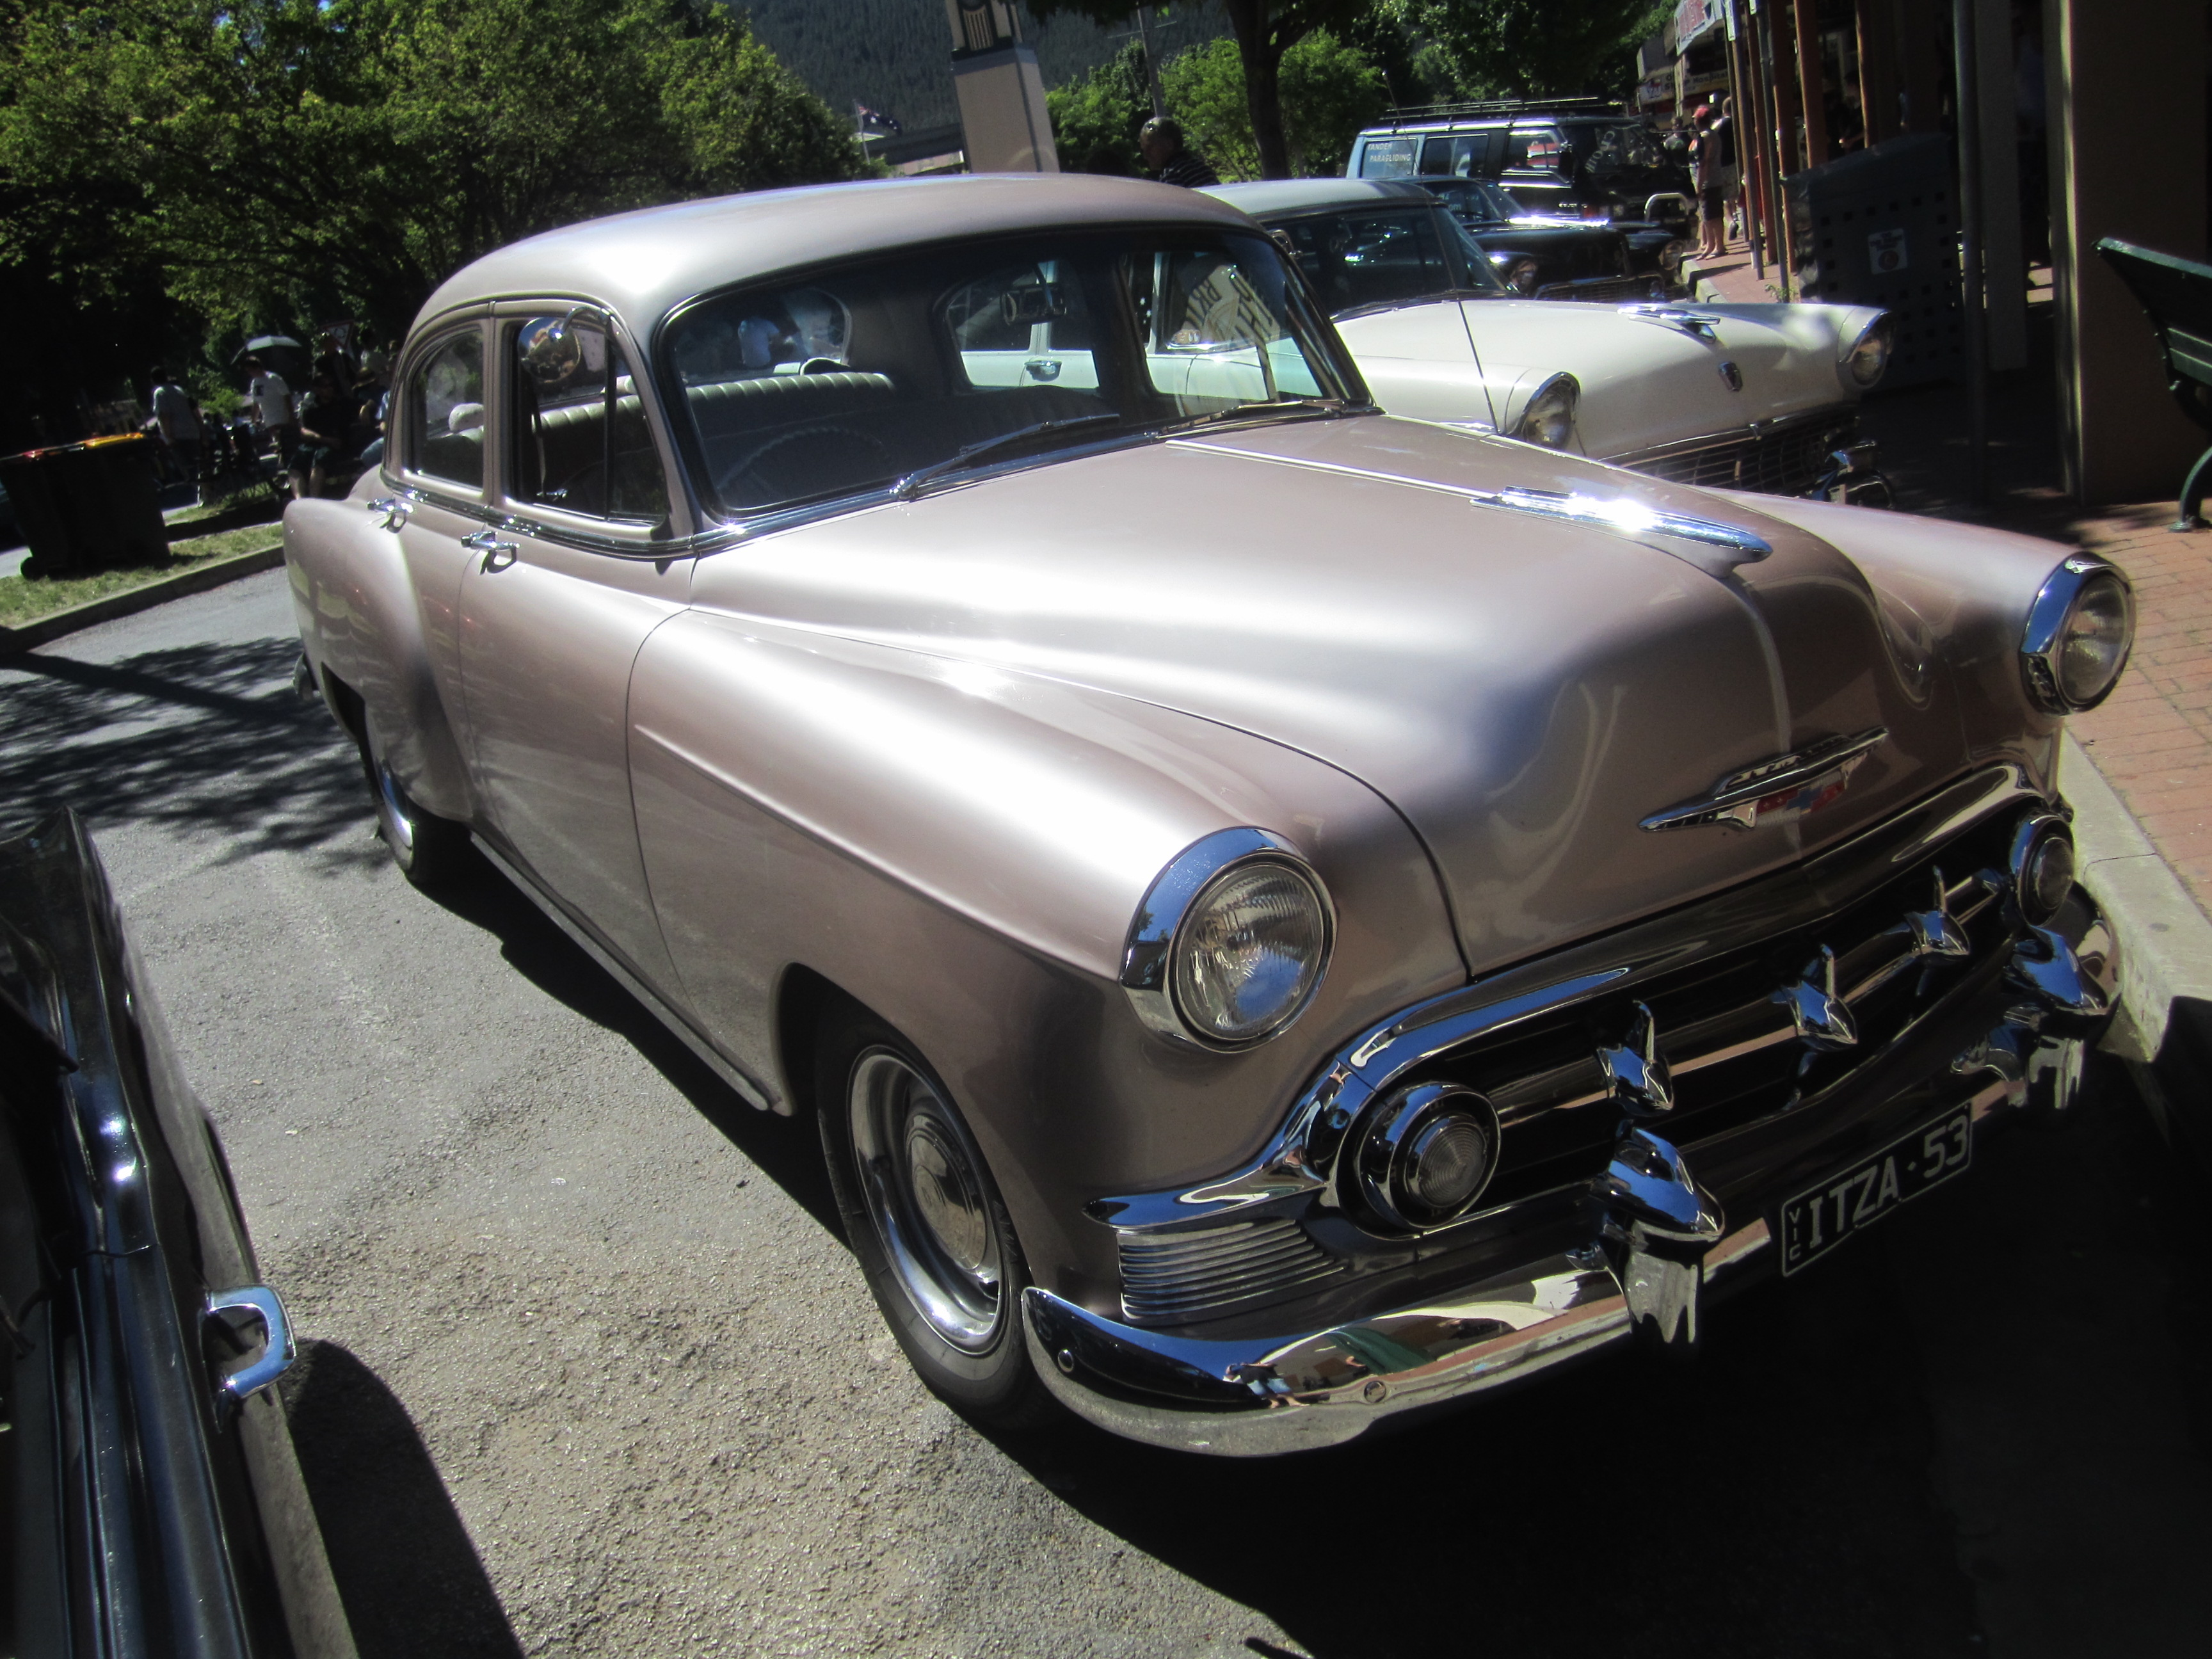 File:1953 Chevrolet 210 Sedan - Flickr - Sicnag.jpg